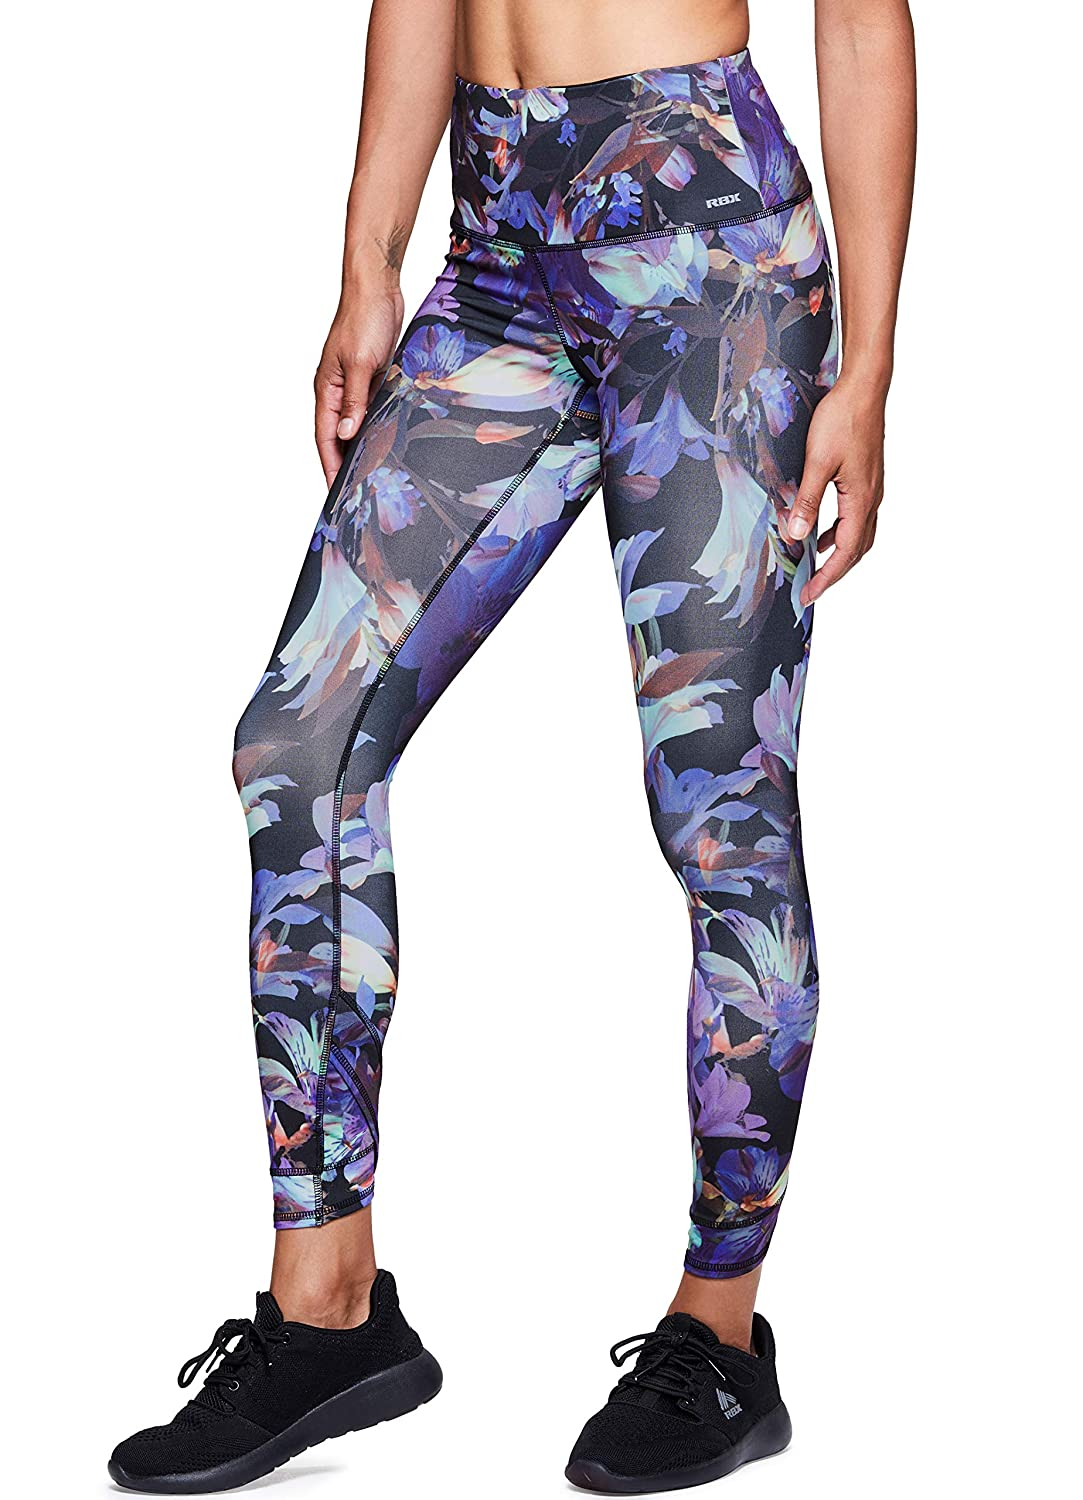 Tulip Purple RBX Active Women's Workout Yoga 7 8 Ankle Legging with Side Detail